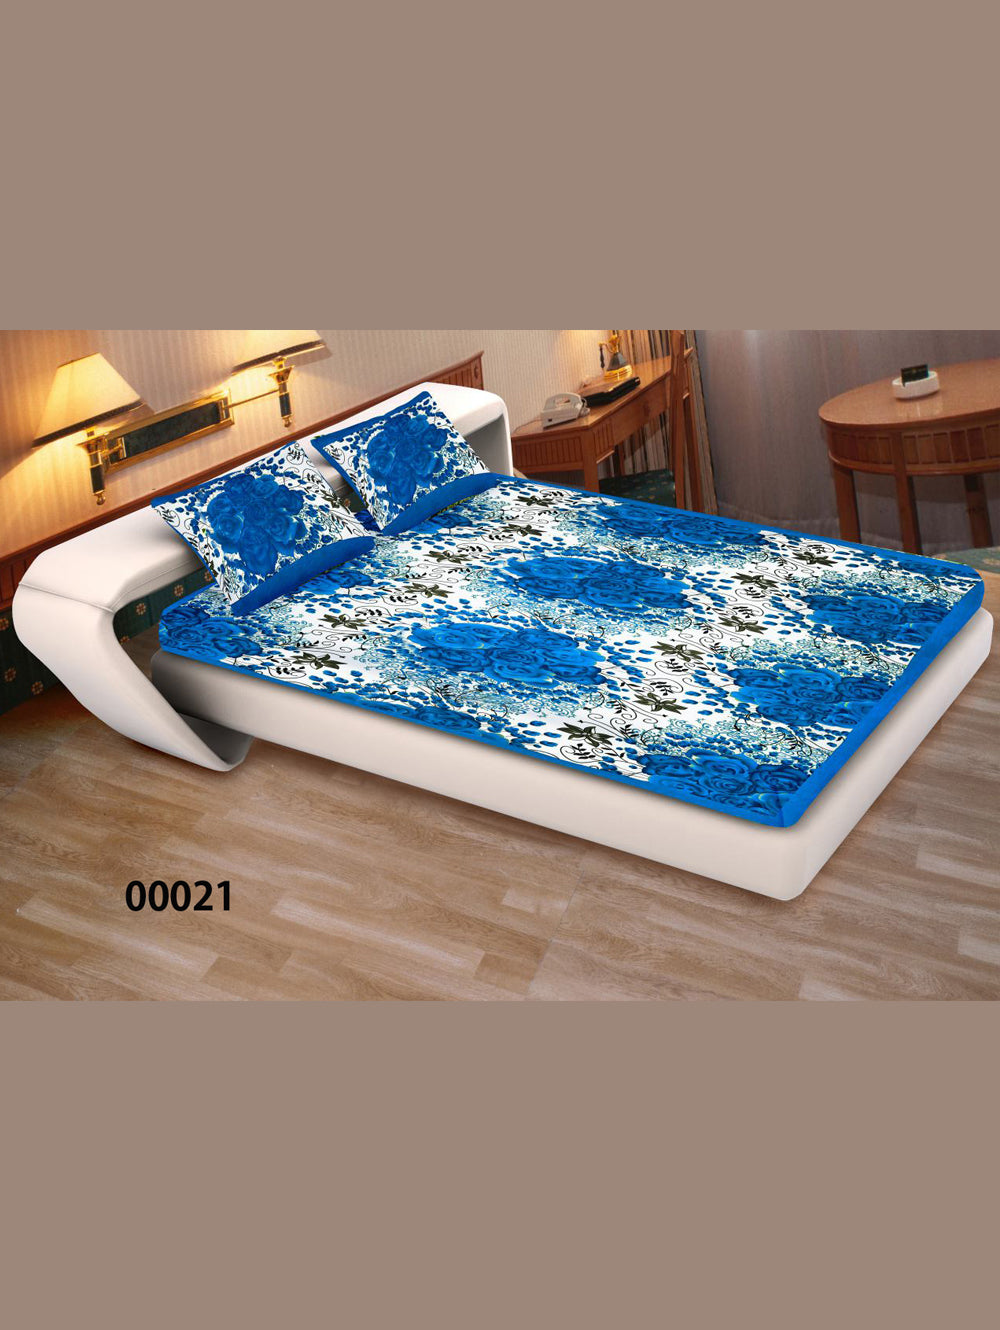 00021RoyalBlue and White Ethnic Cotton Queen Size Floral Bedsheet With 2 Pillow Covers